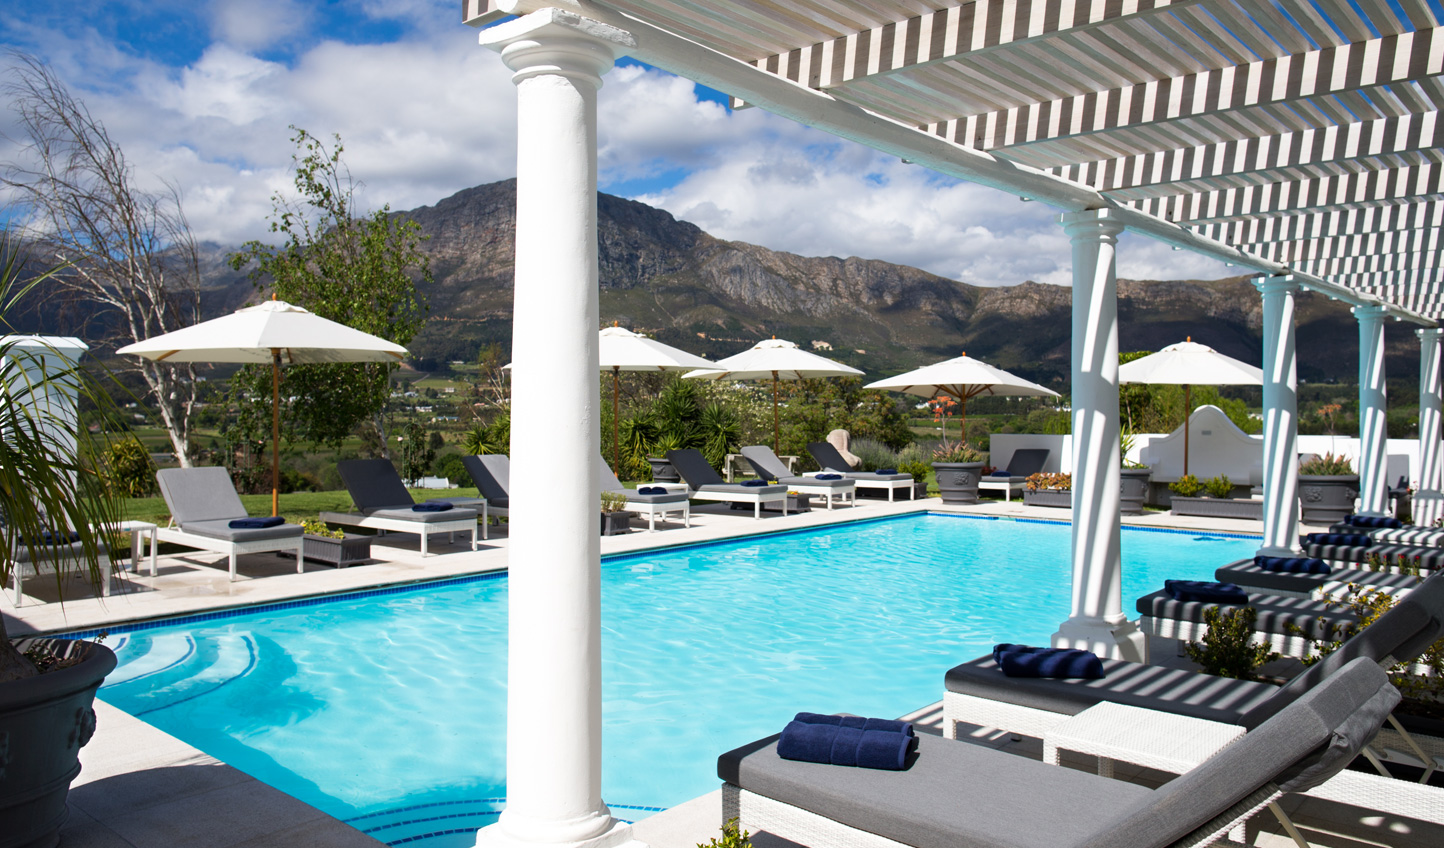 Refresh and reset at the spa and outdoor pool